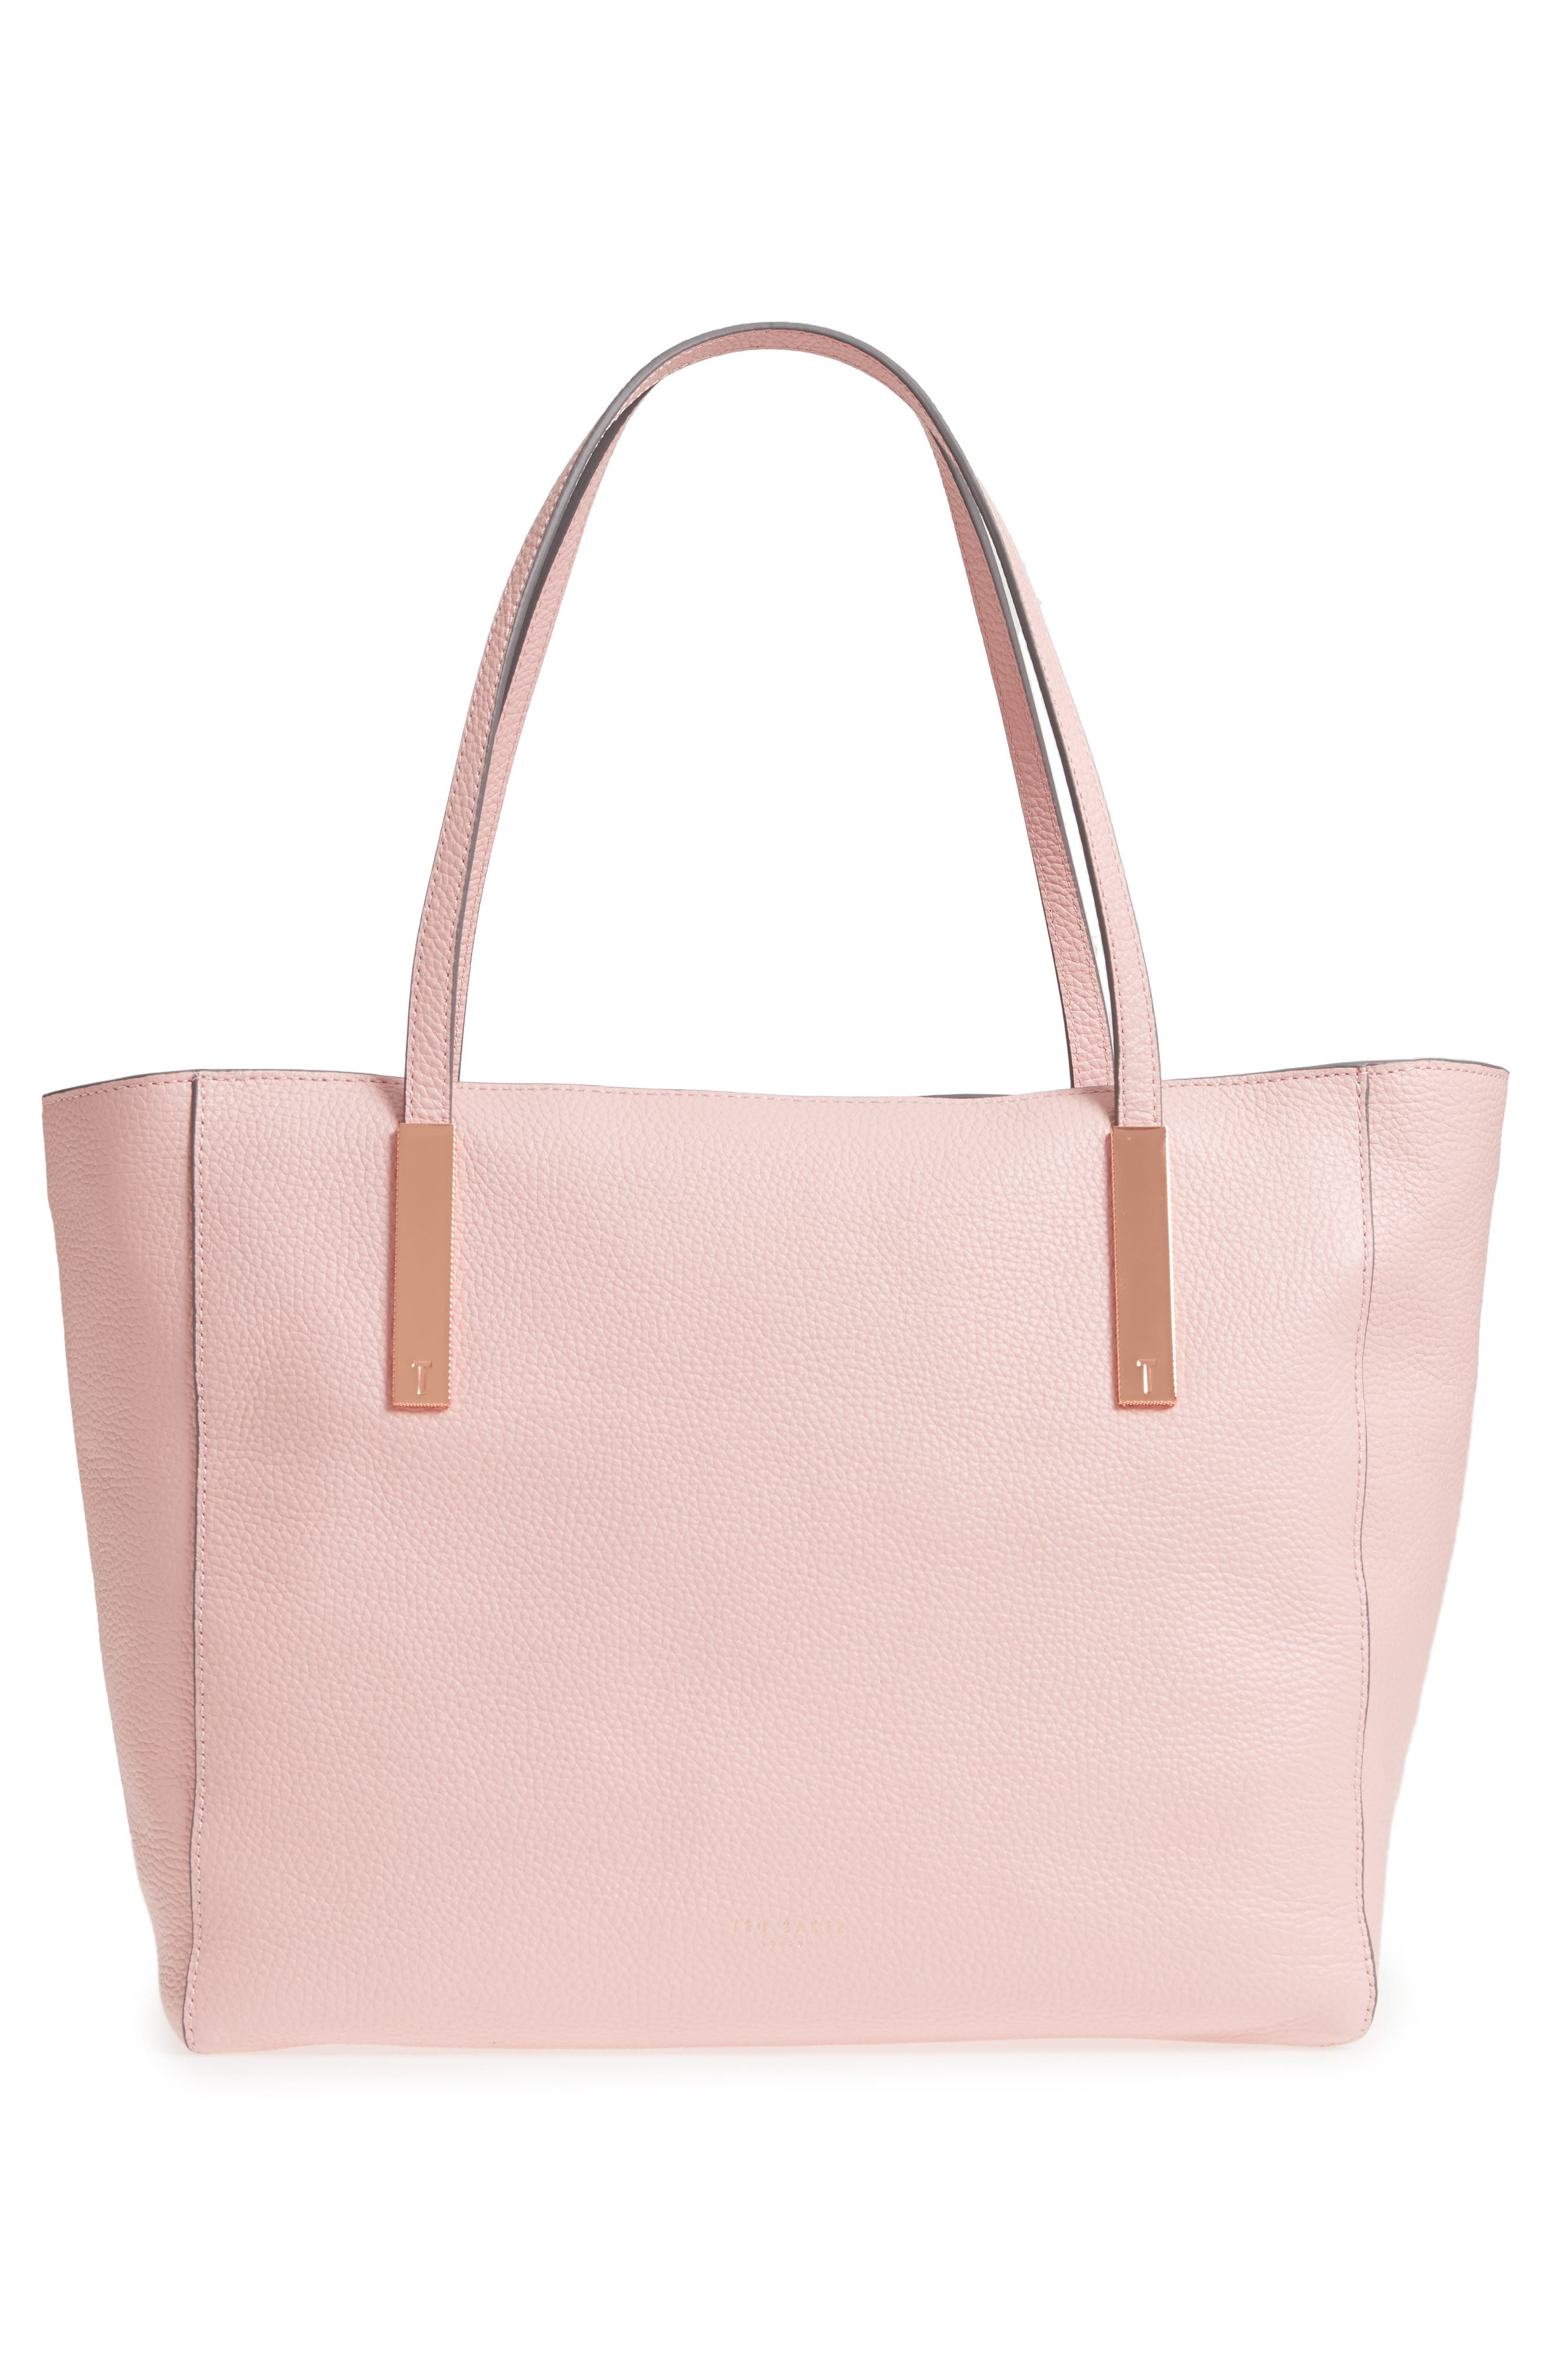 Palace Gardens Large Leather Tote,                             Alternate thumbnail 3, color,